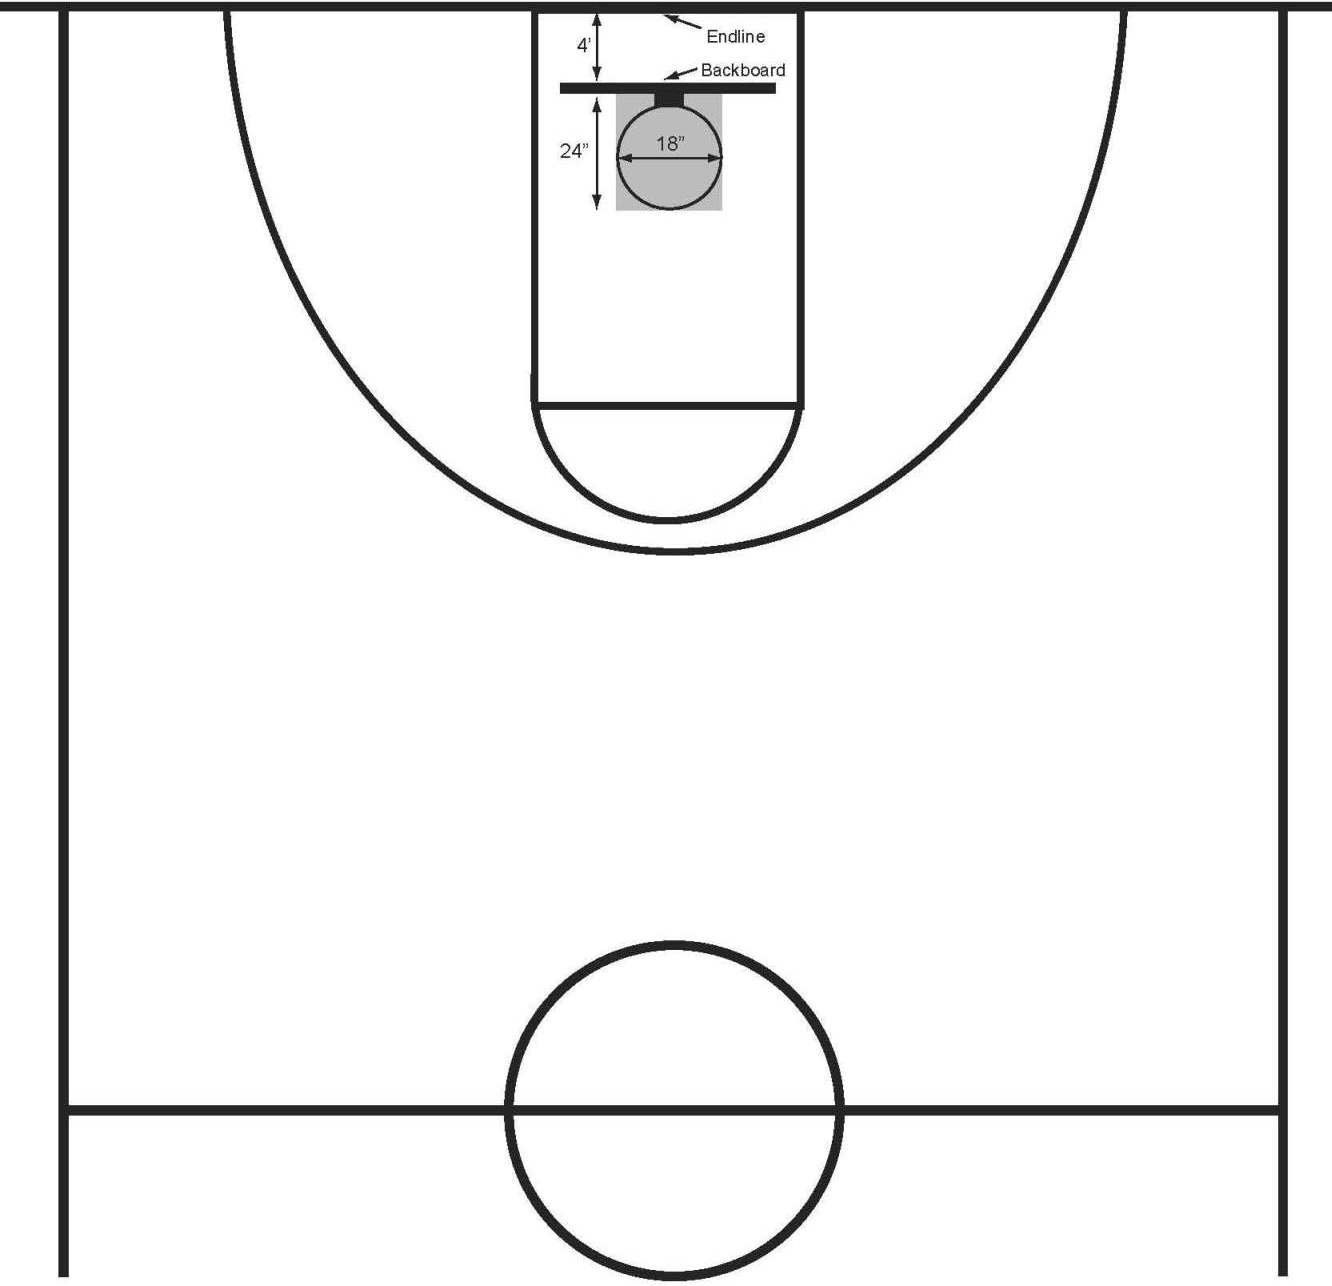 blank half court basketball diagram 2006 yfz 450 wiring printable clipart wikiclipart